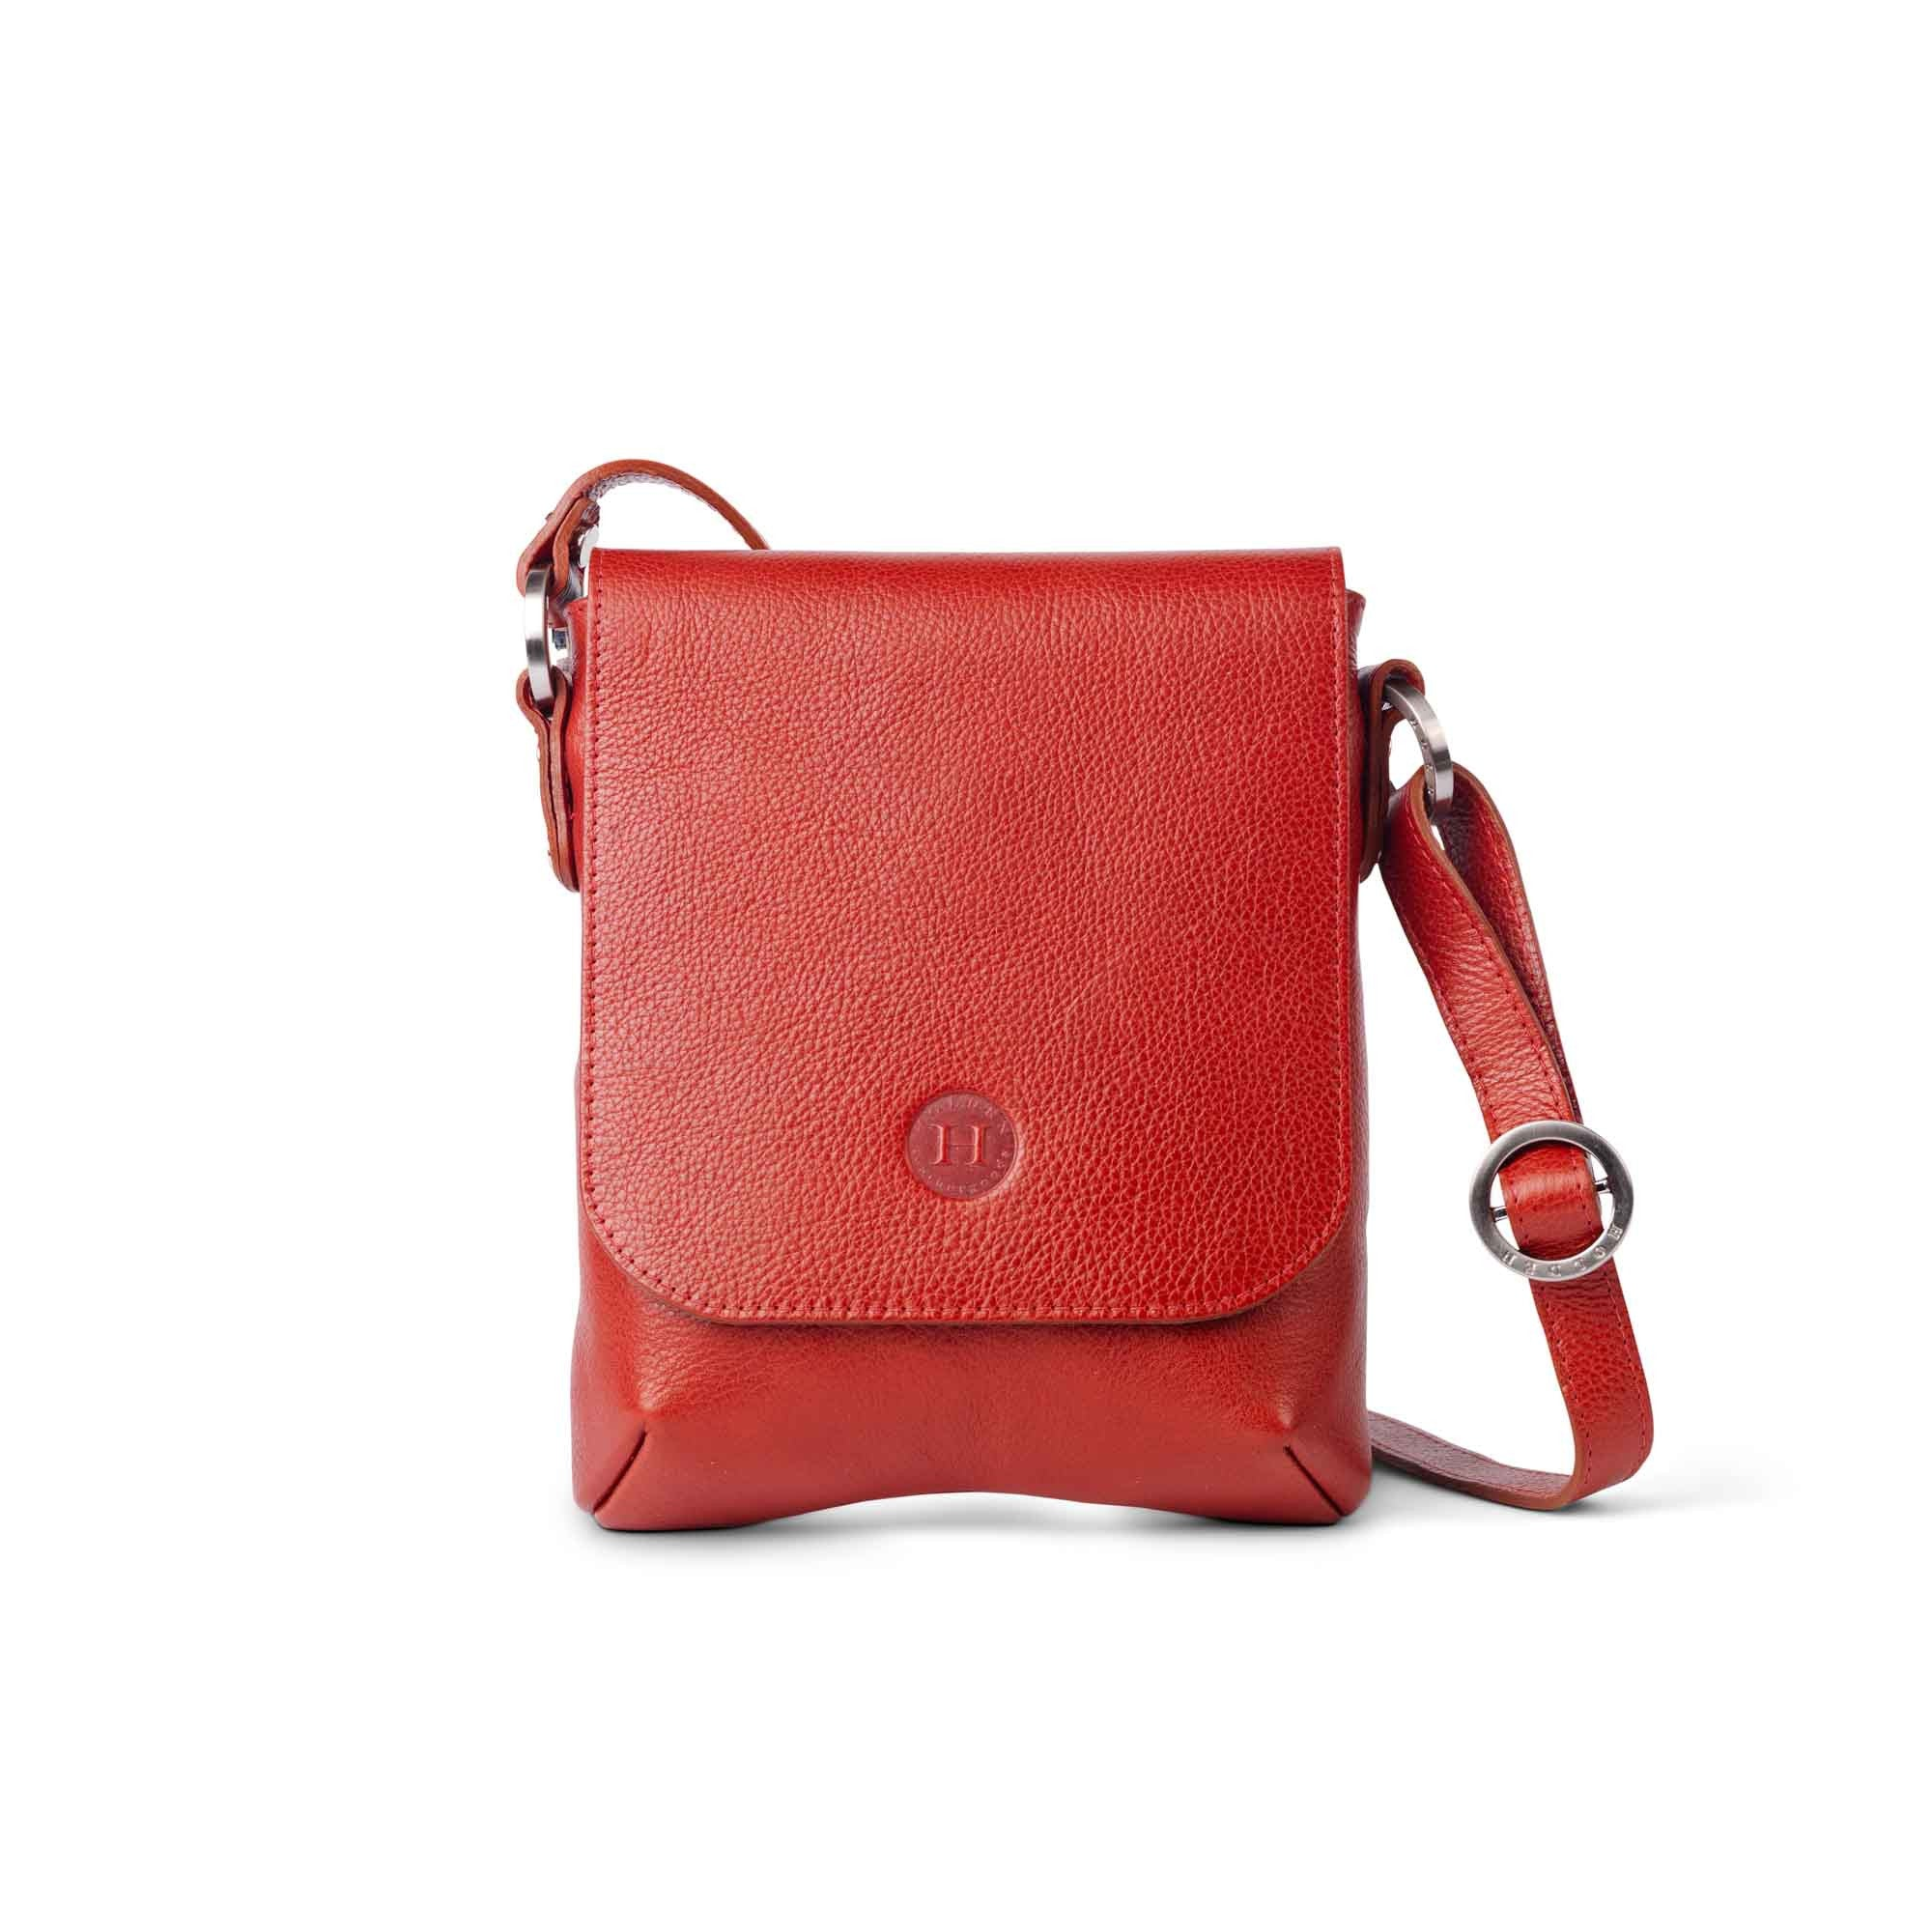 83ec916a88c Eithne Medium Leather Crossover Bag Red - Holden Leathergoods, leather bags  handmade in Ireland